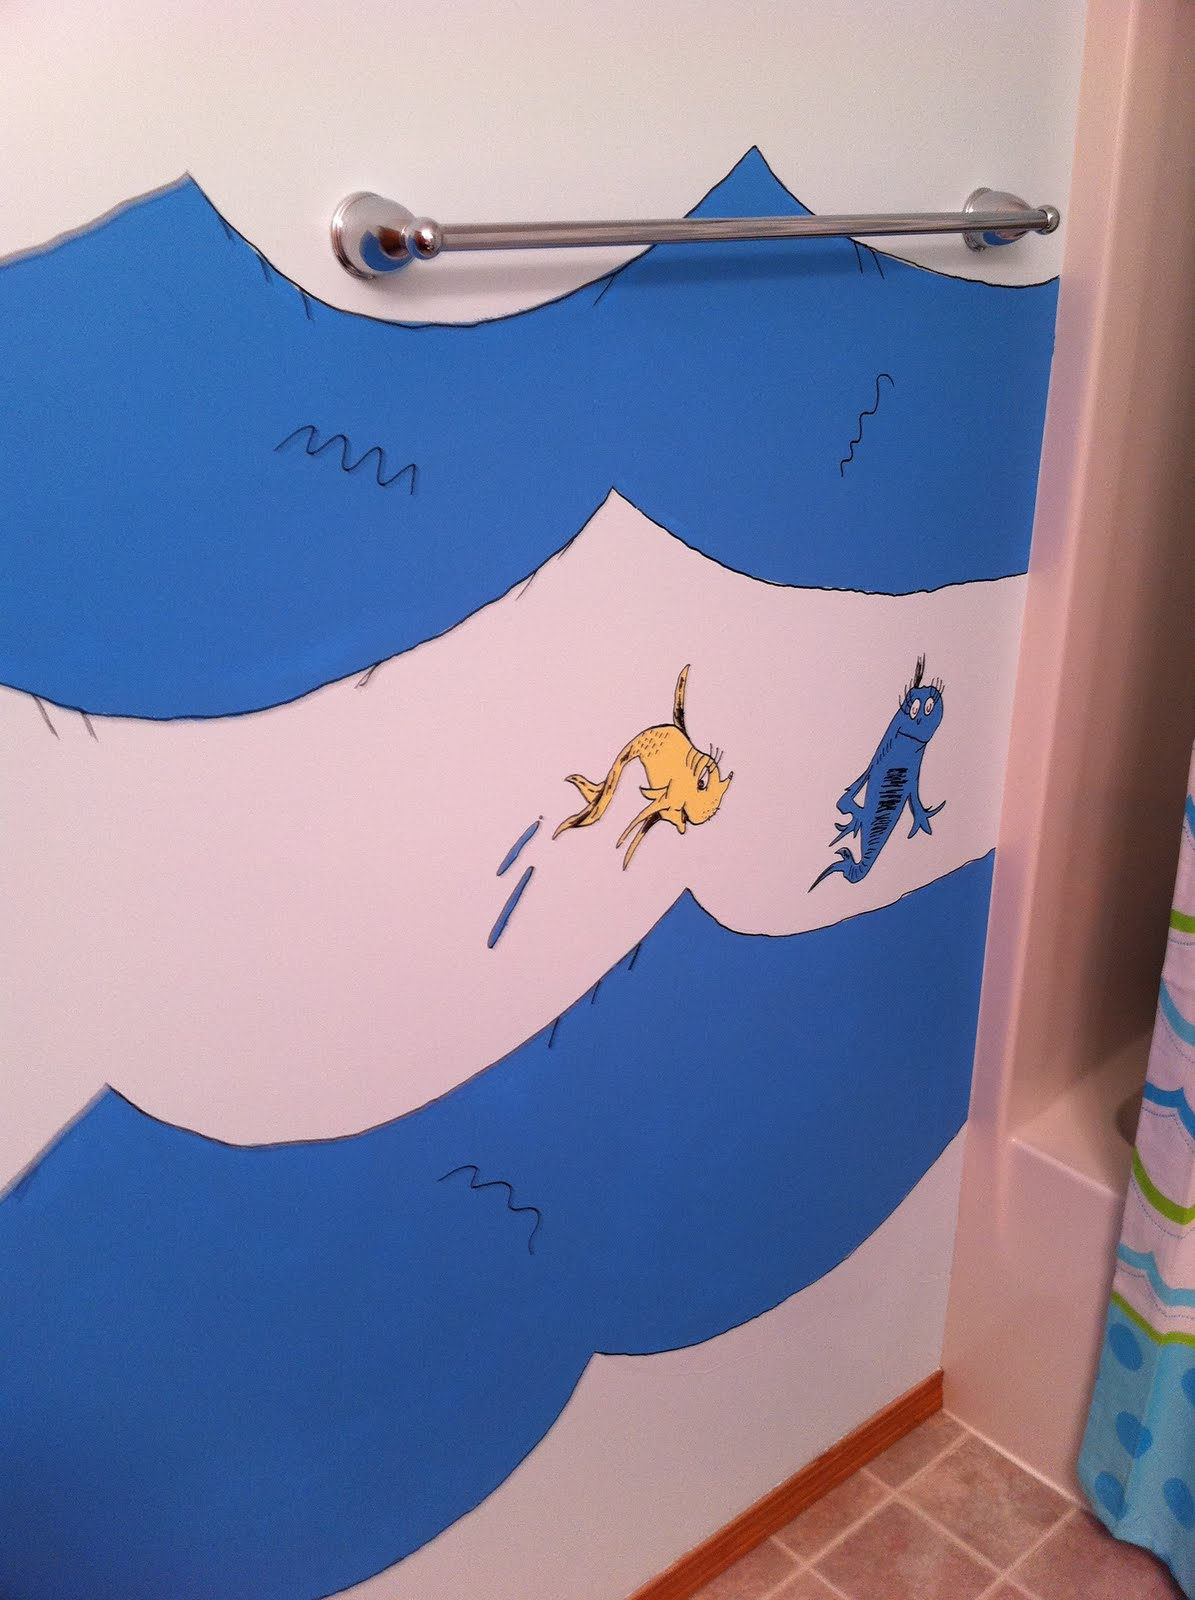 Dr. Seuss Bathroom